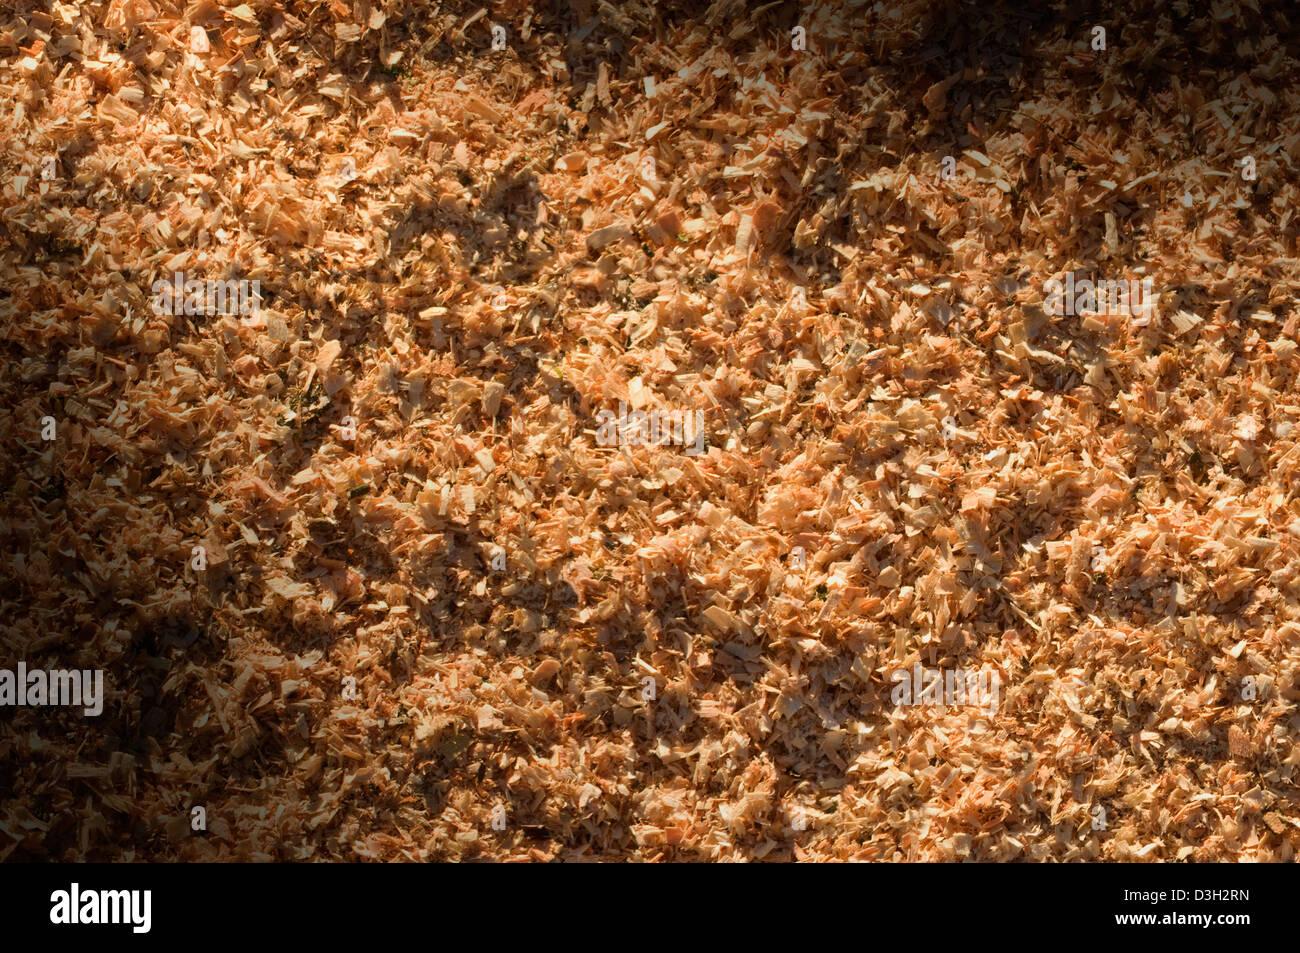 Sawdust particles lit diagonally - Stock Image